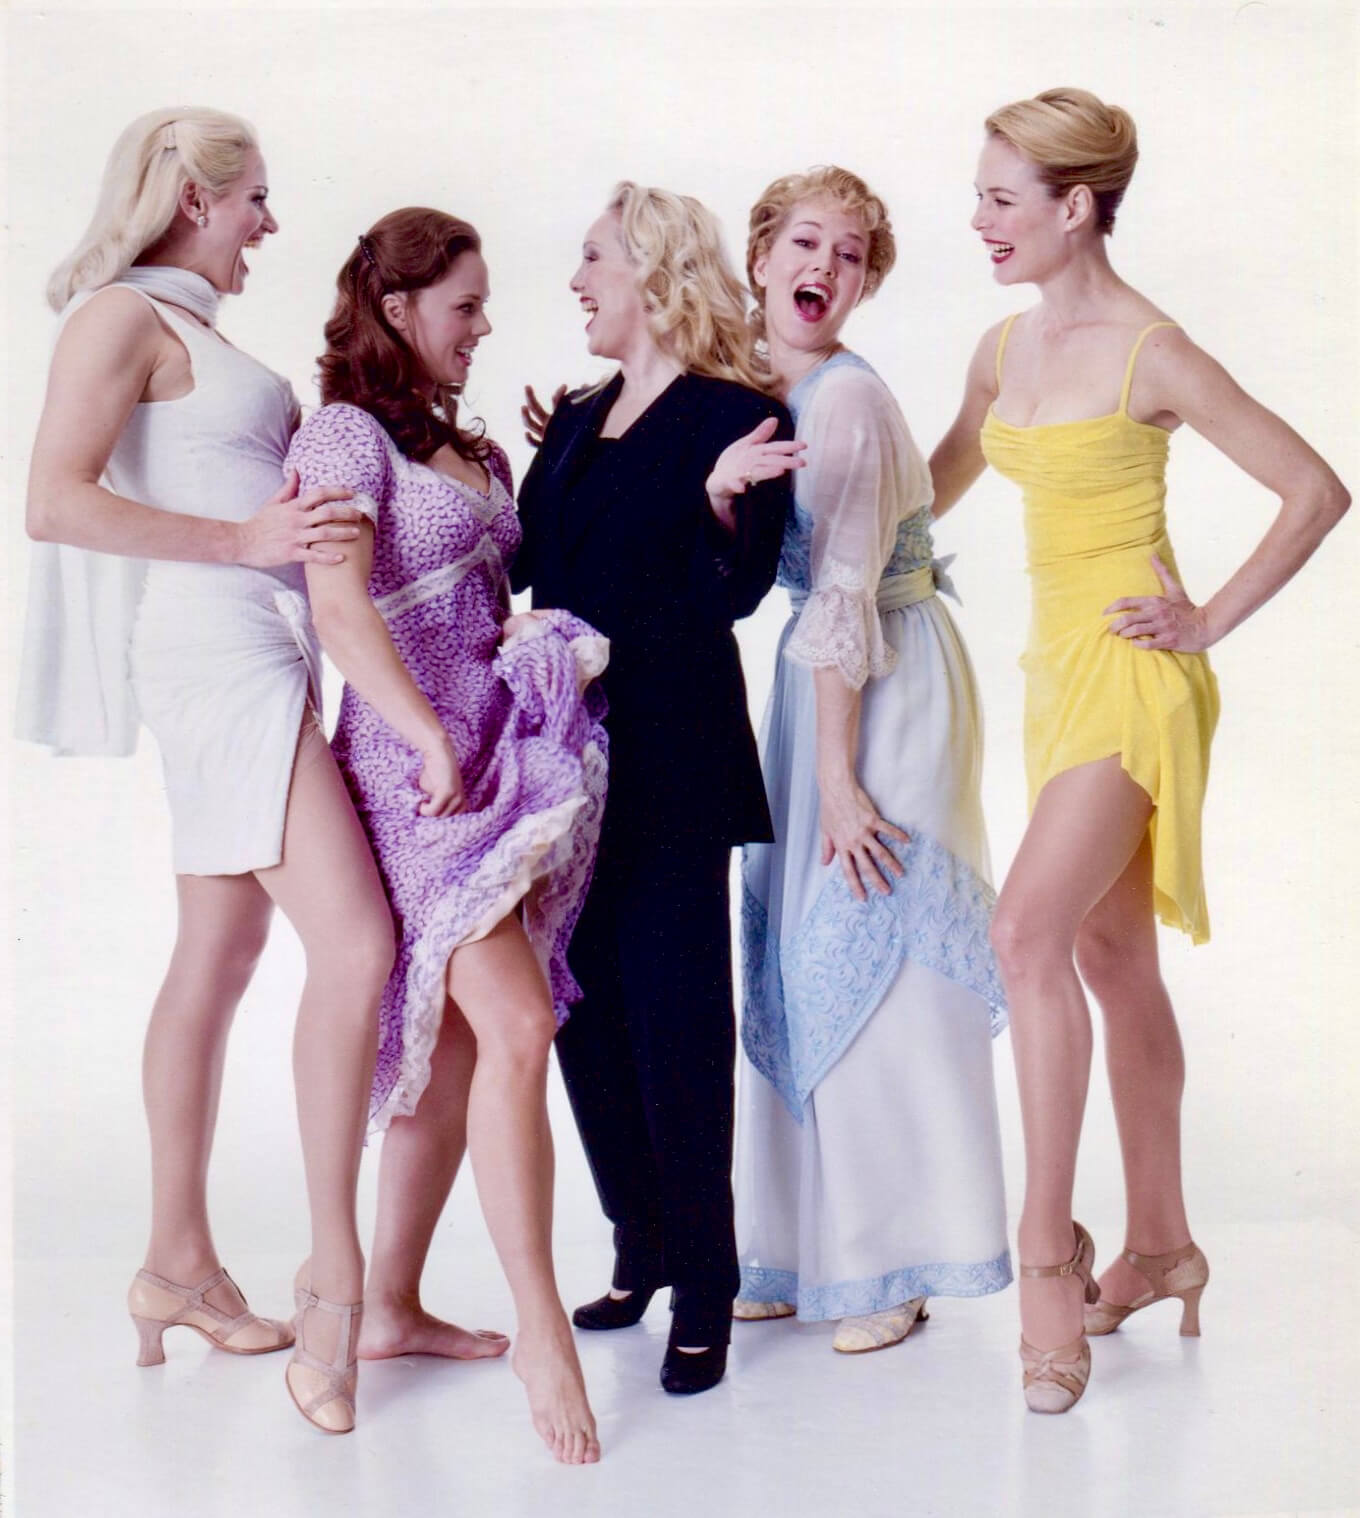 Susan Stroman with (left to right) Cady Huffman as Ula, Kate Levering as Therese, Rebecca Luker as Marian, and Colleen Dunn as Girl in Yellow in the Dress.